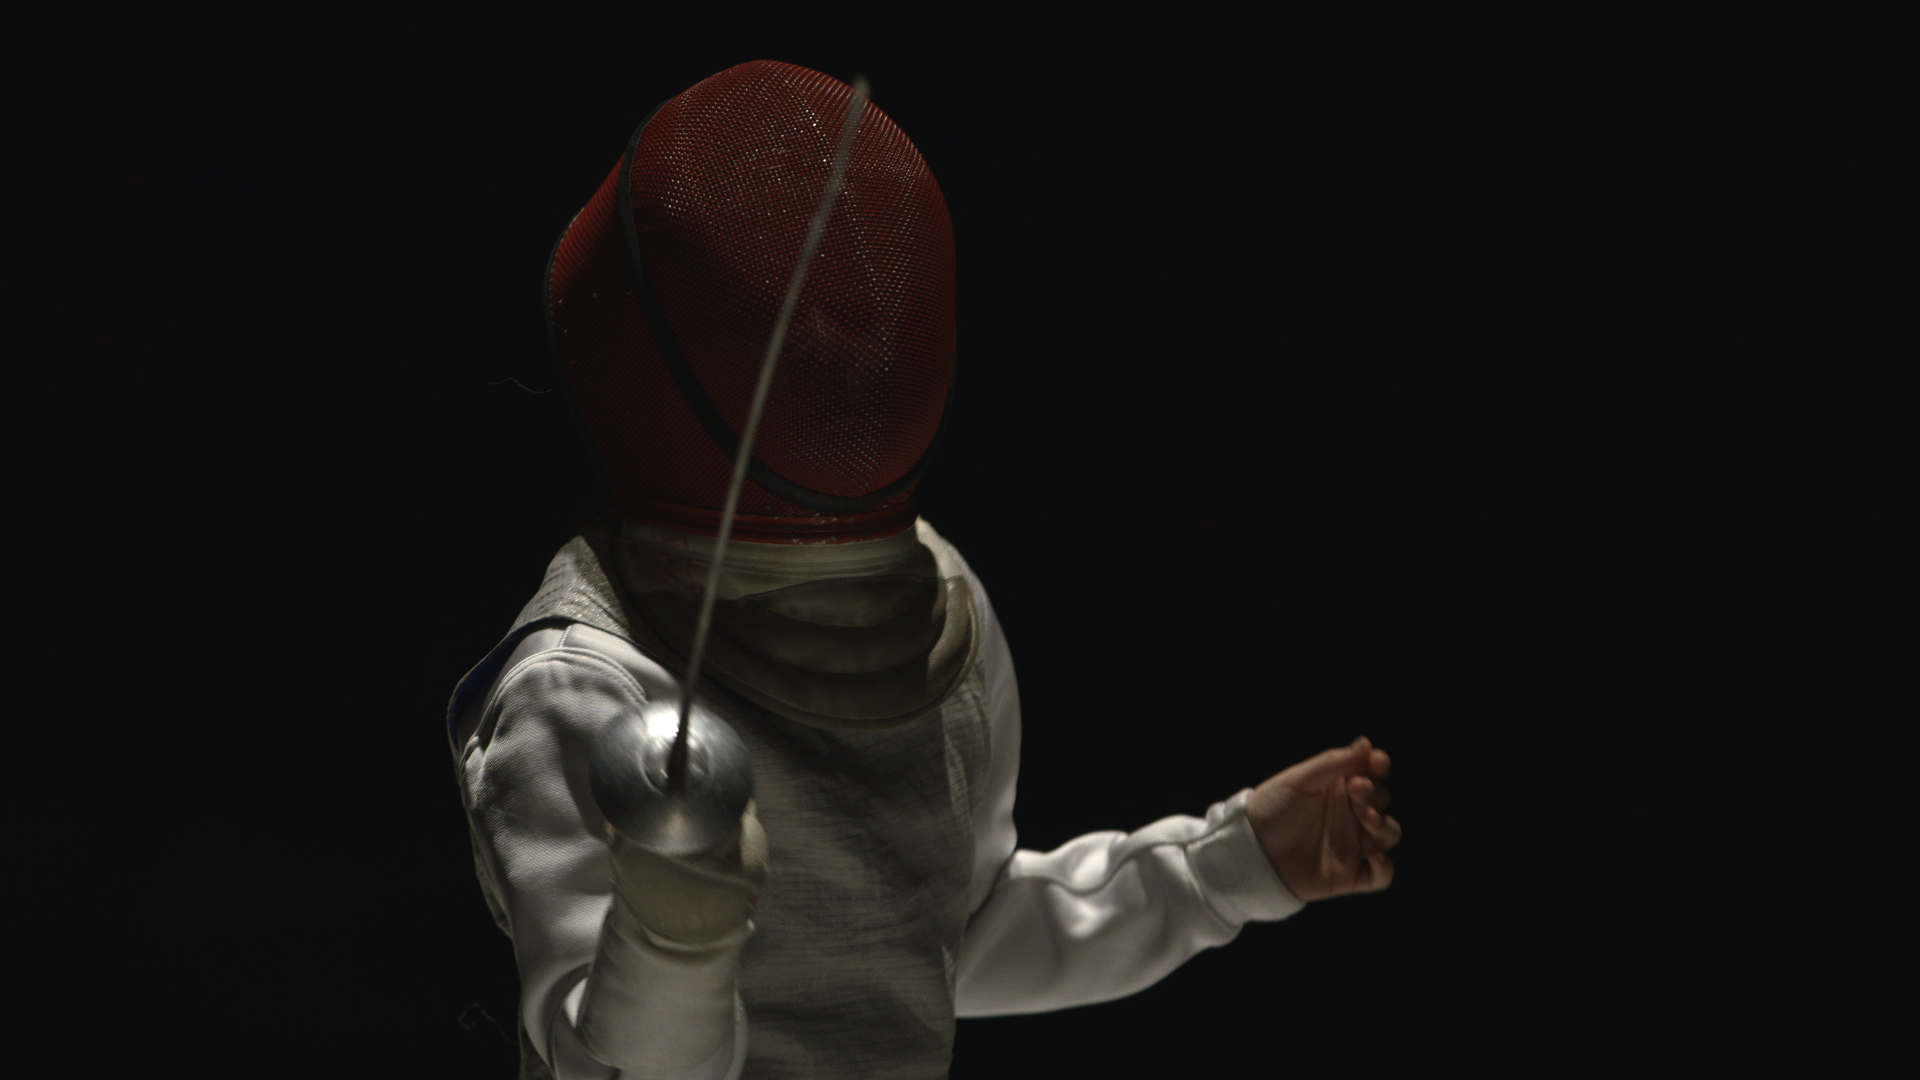 Fencing_RUBEN_KILLER.jpg